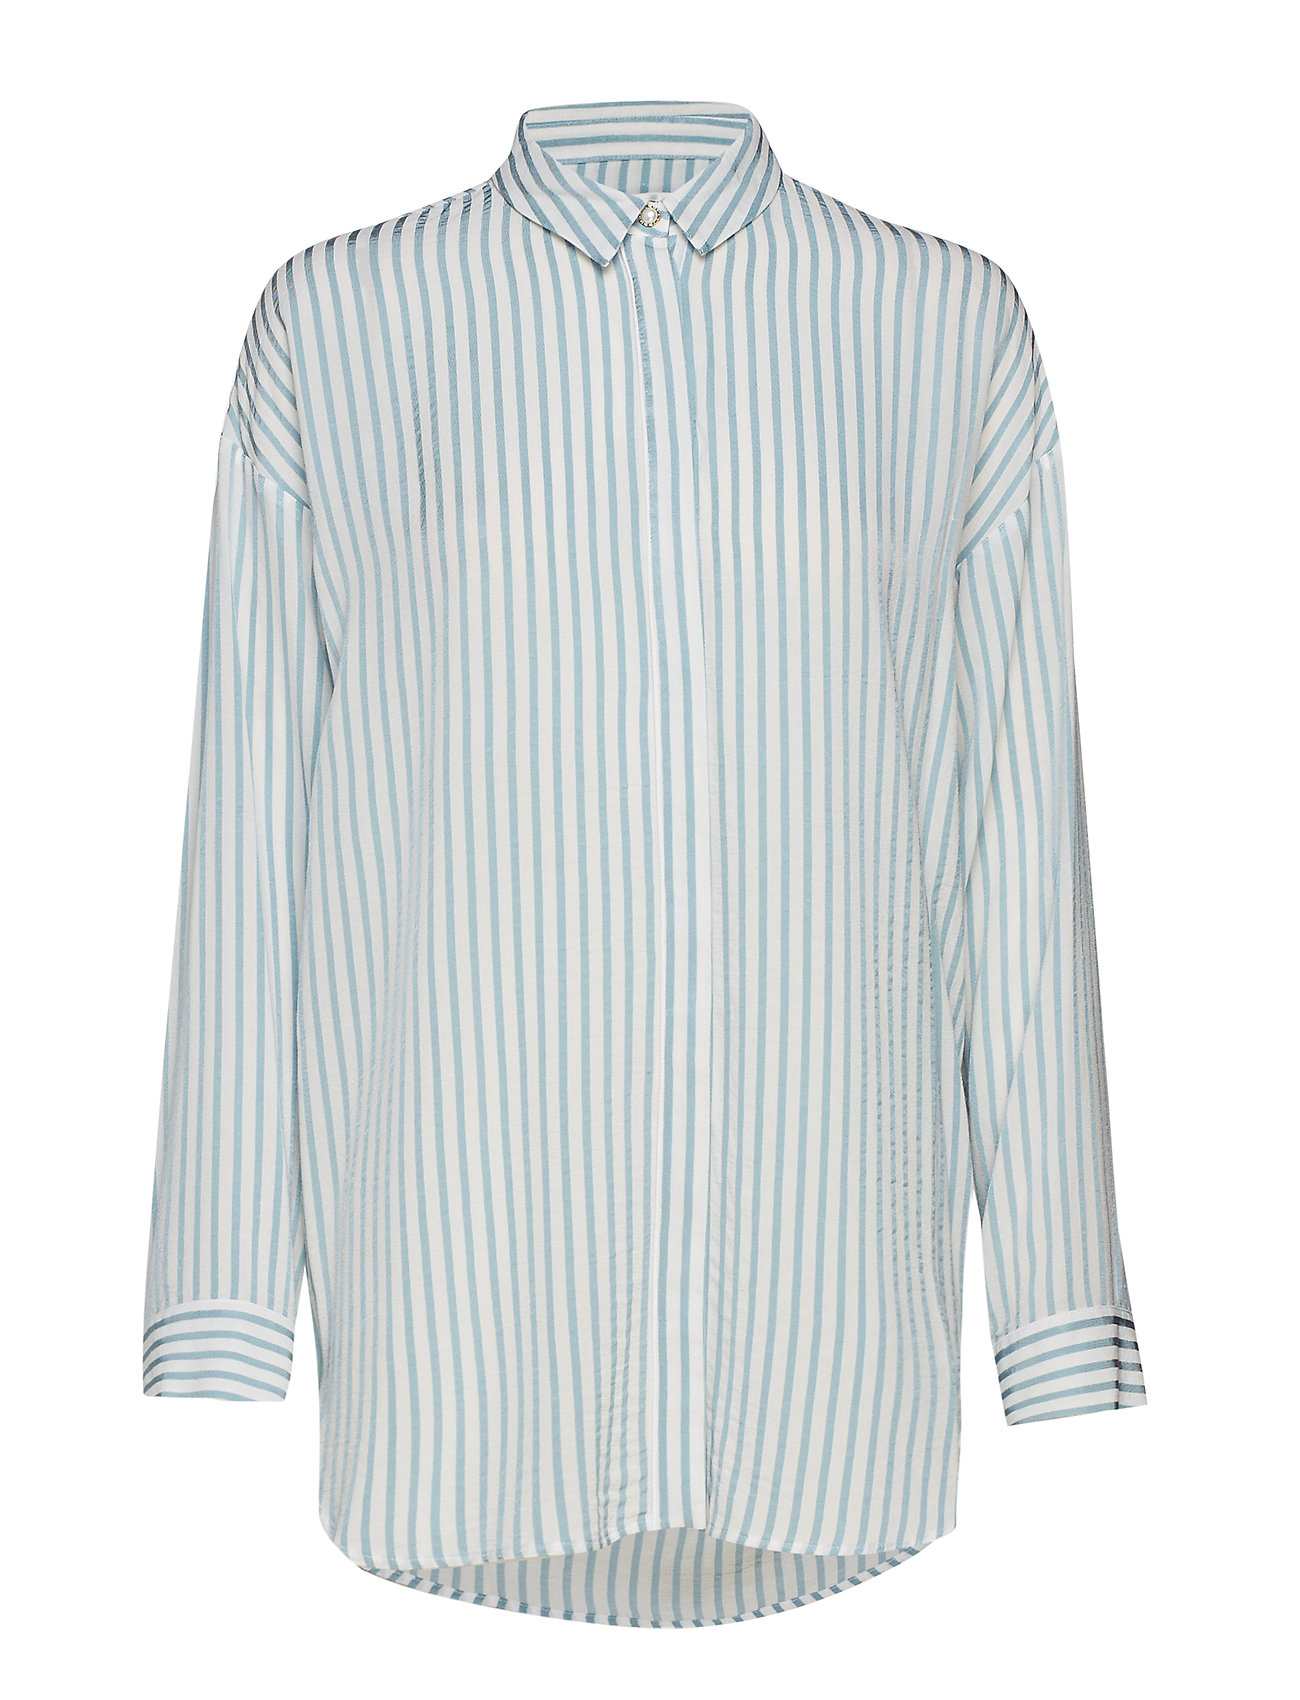 Gestuz Shay shirt SO19 - WHITE W. BLUE STRIPES